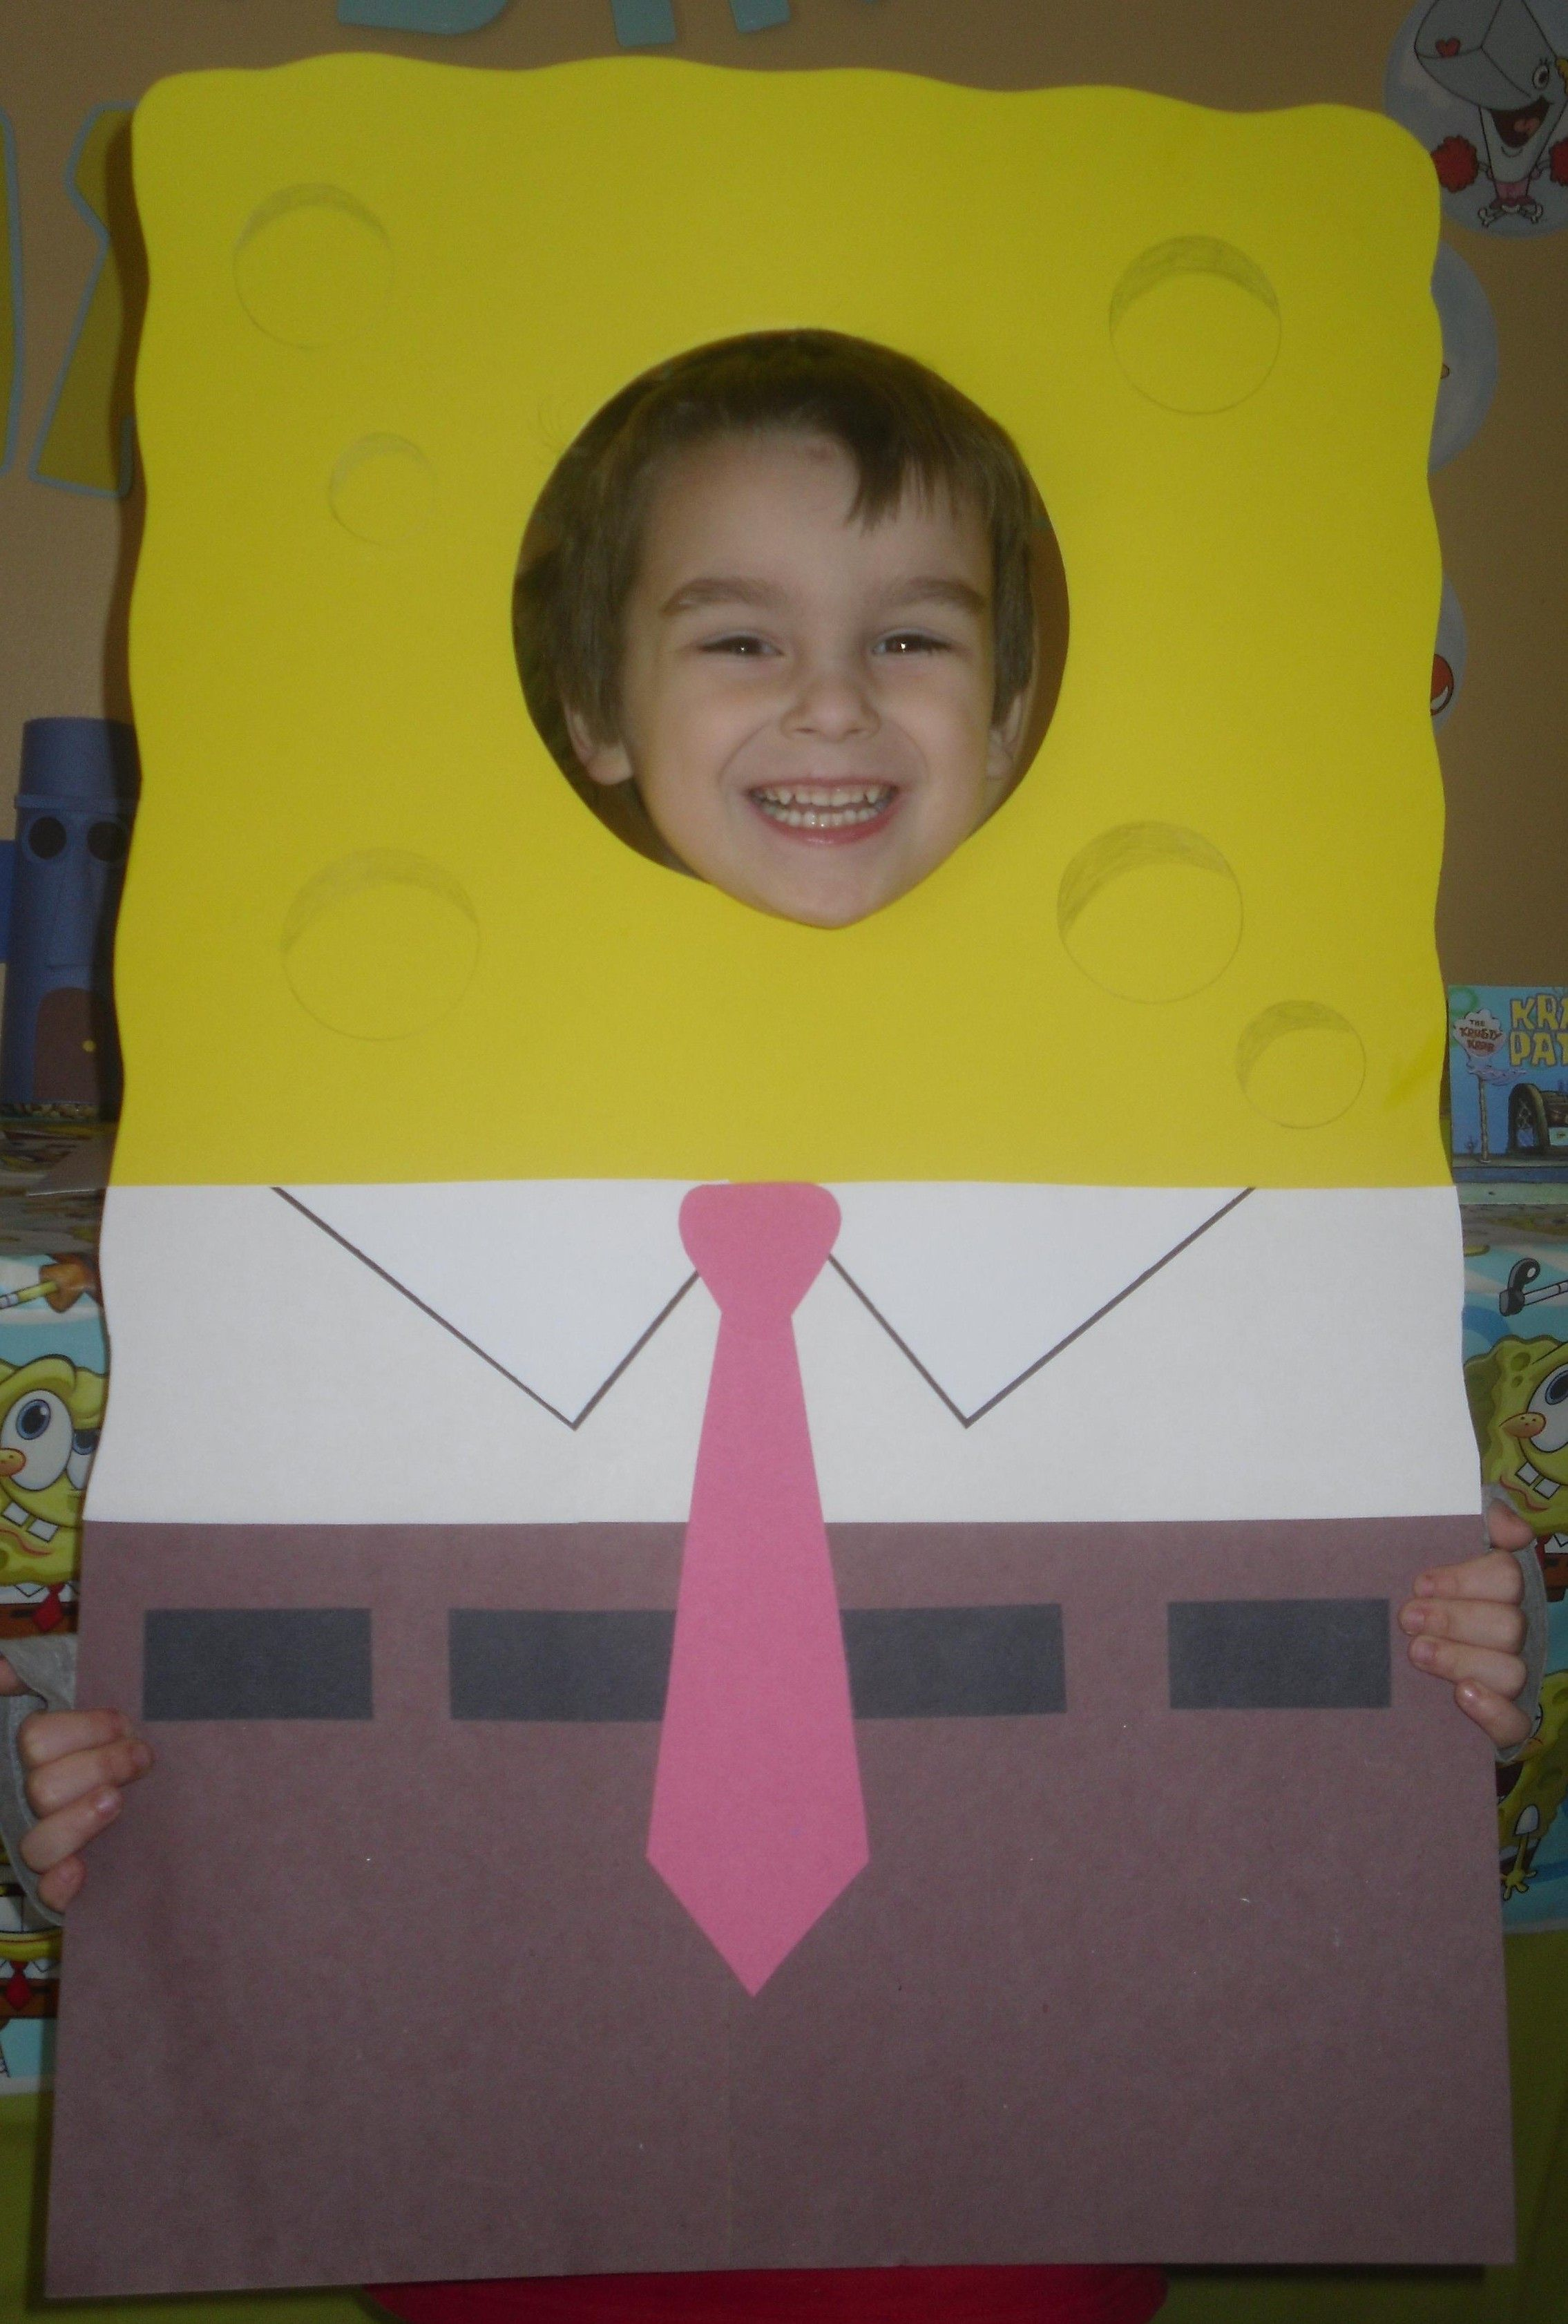 spongebob party photo prop made out of poster board hmmm i